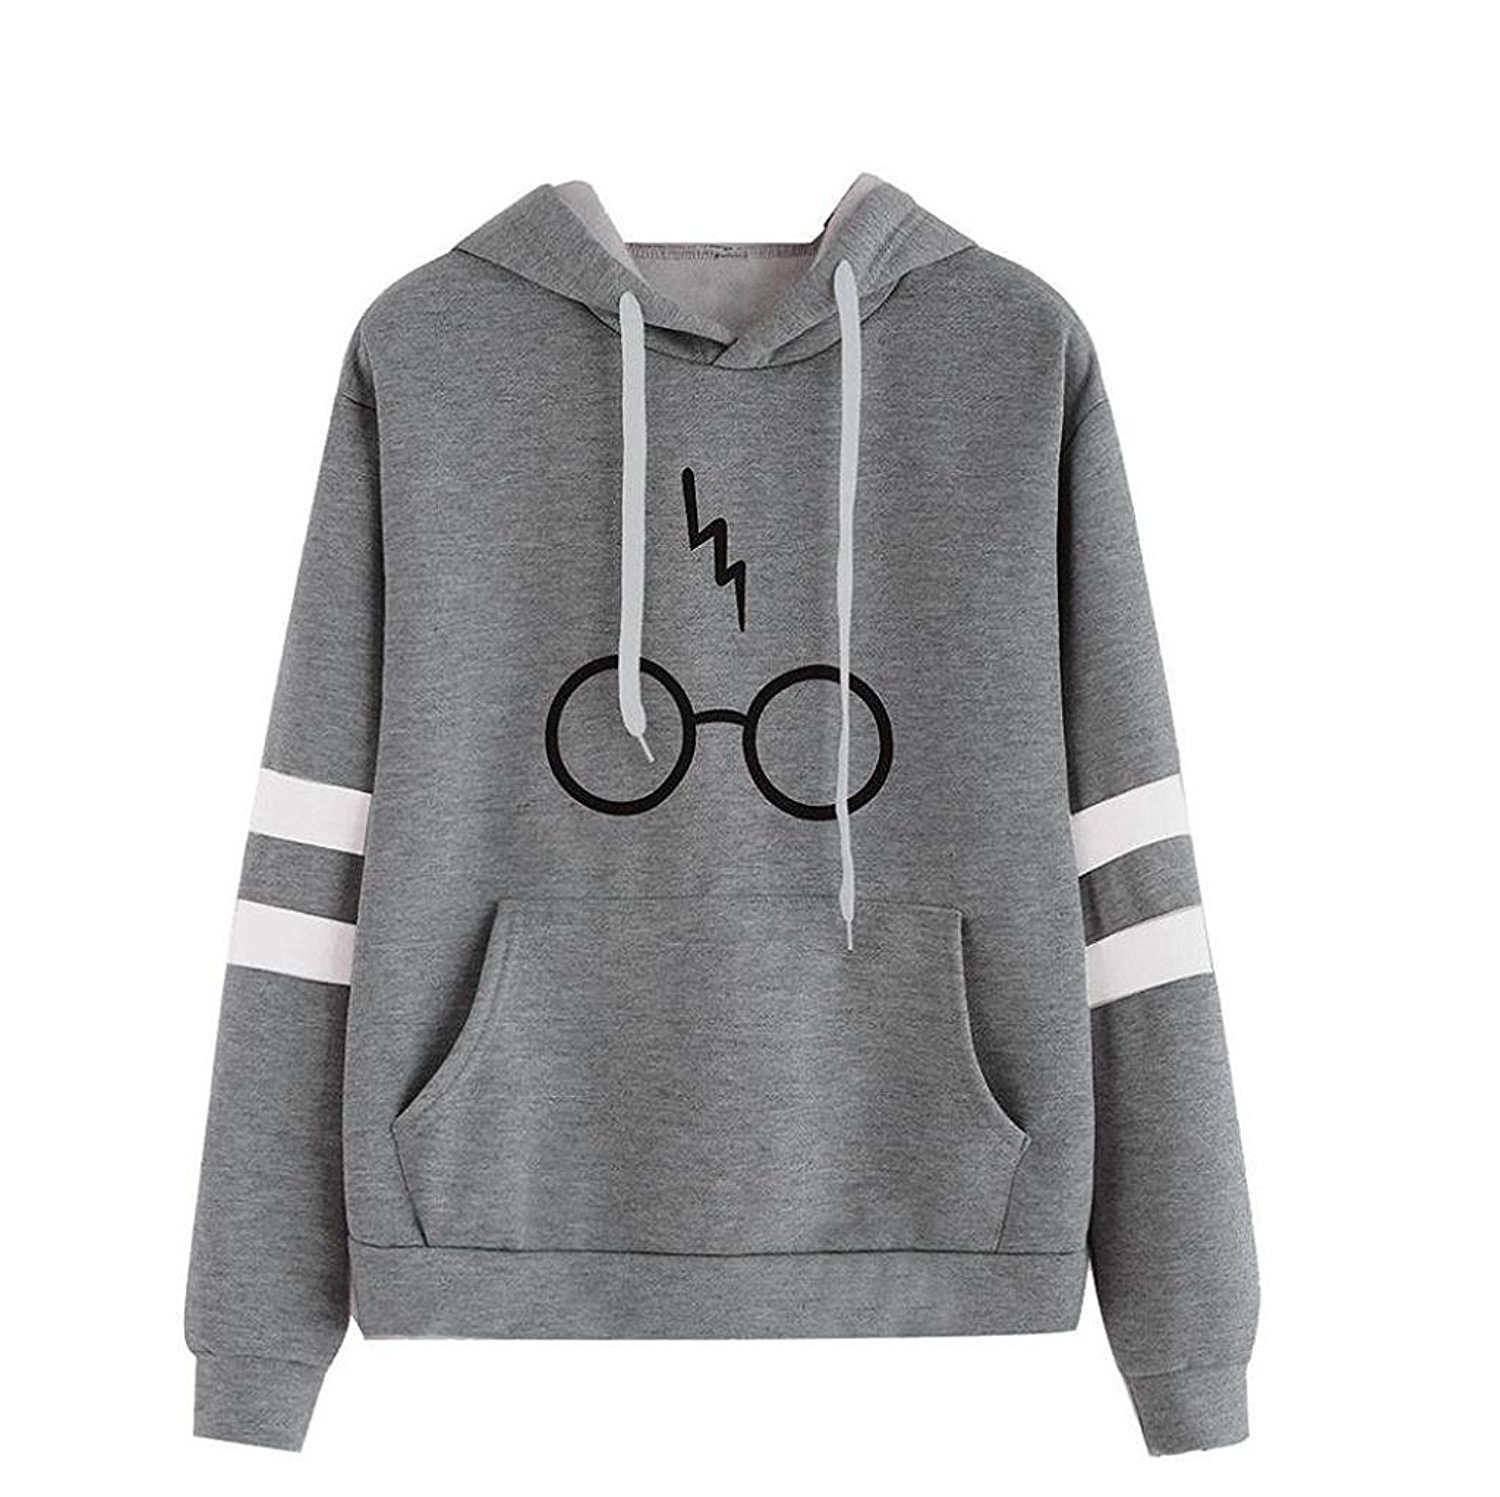 Lihuang Women's Autumn Fashion Long Sleeve Pullover Harry Potter Glasses Prints Hoodies Hooded Sweatshirt Sweater Tops